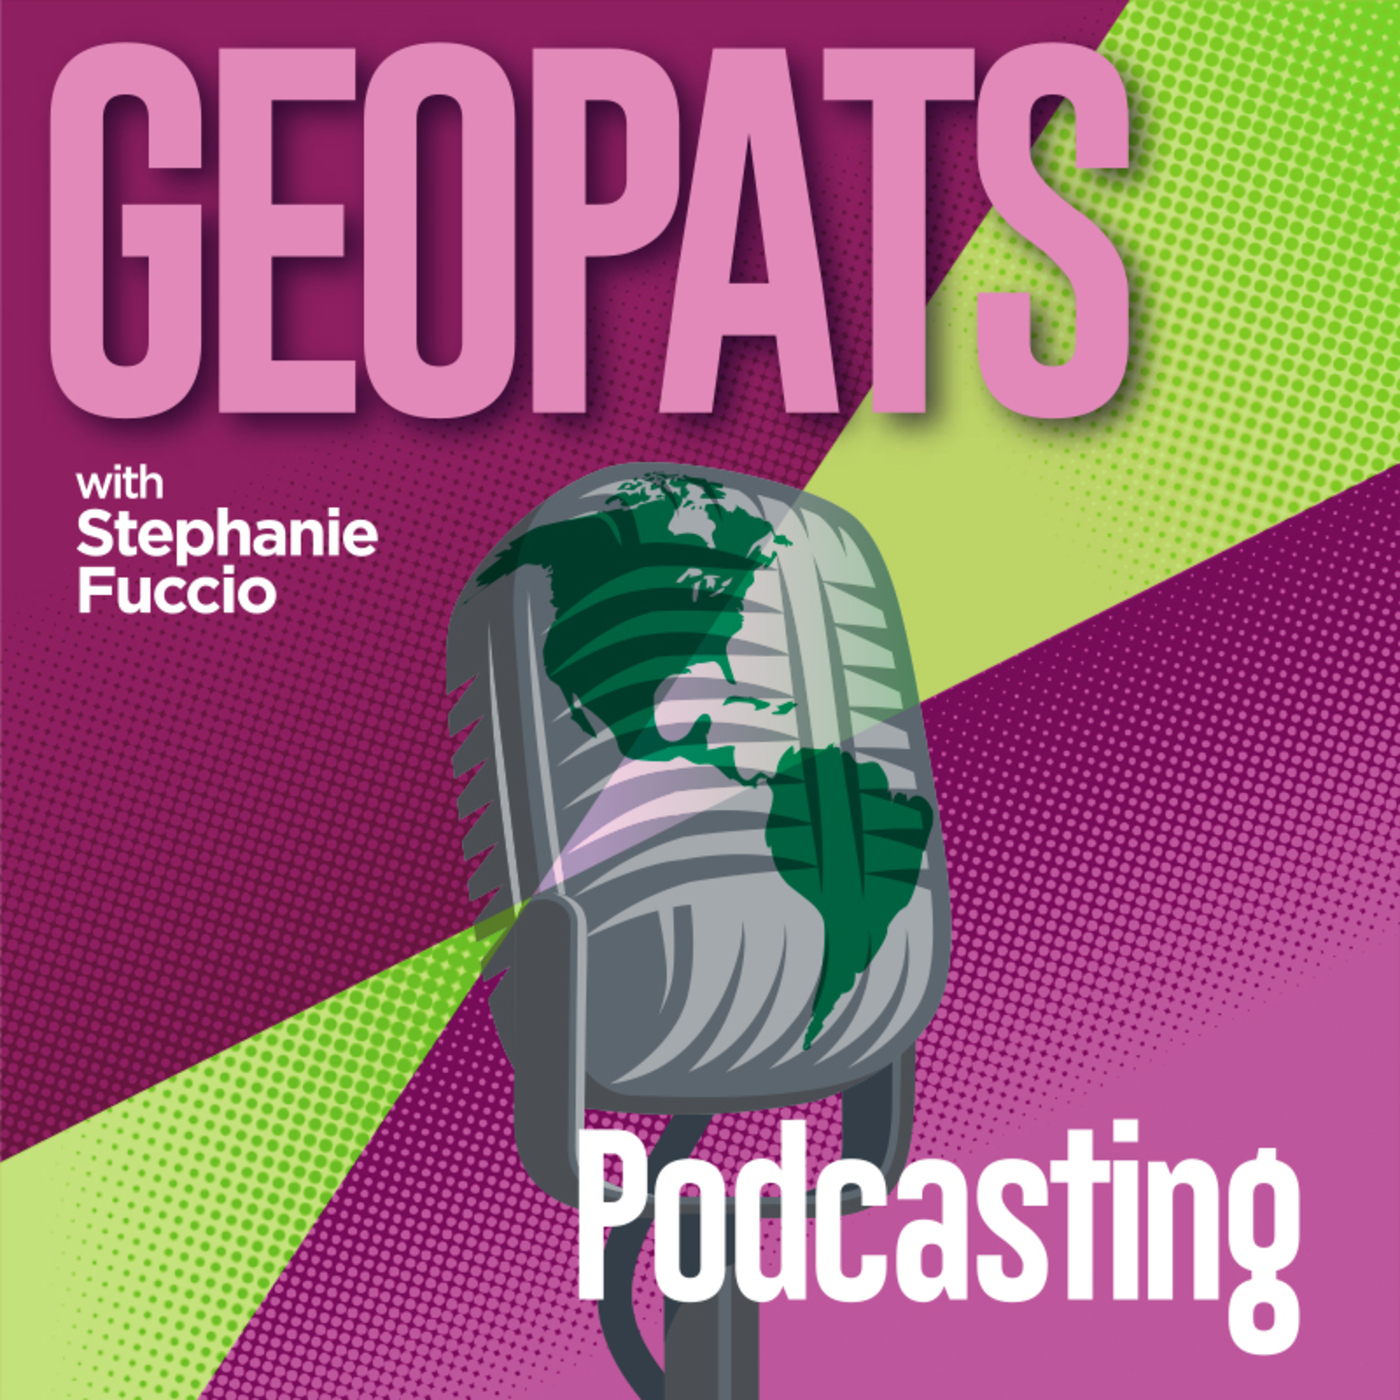 Artwork for podcast Geopats Podcasting